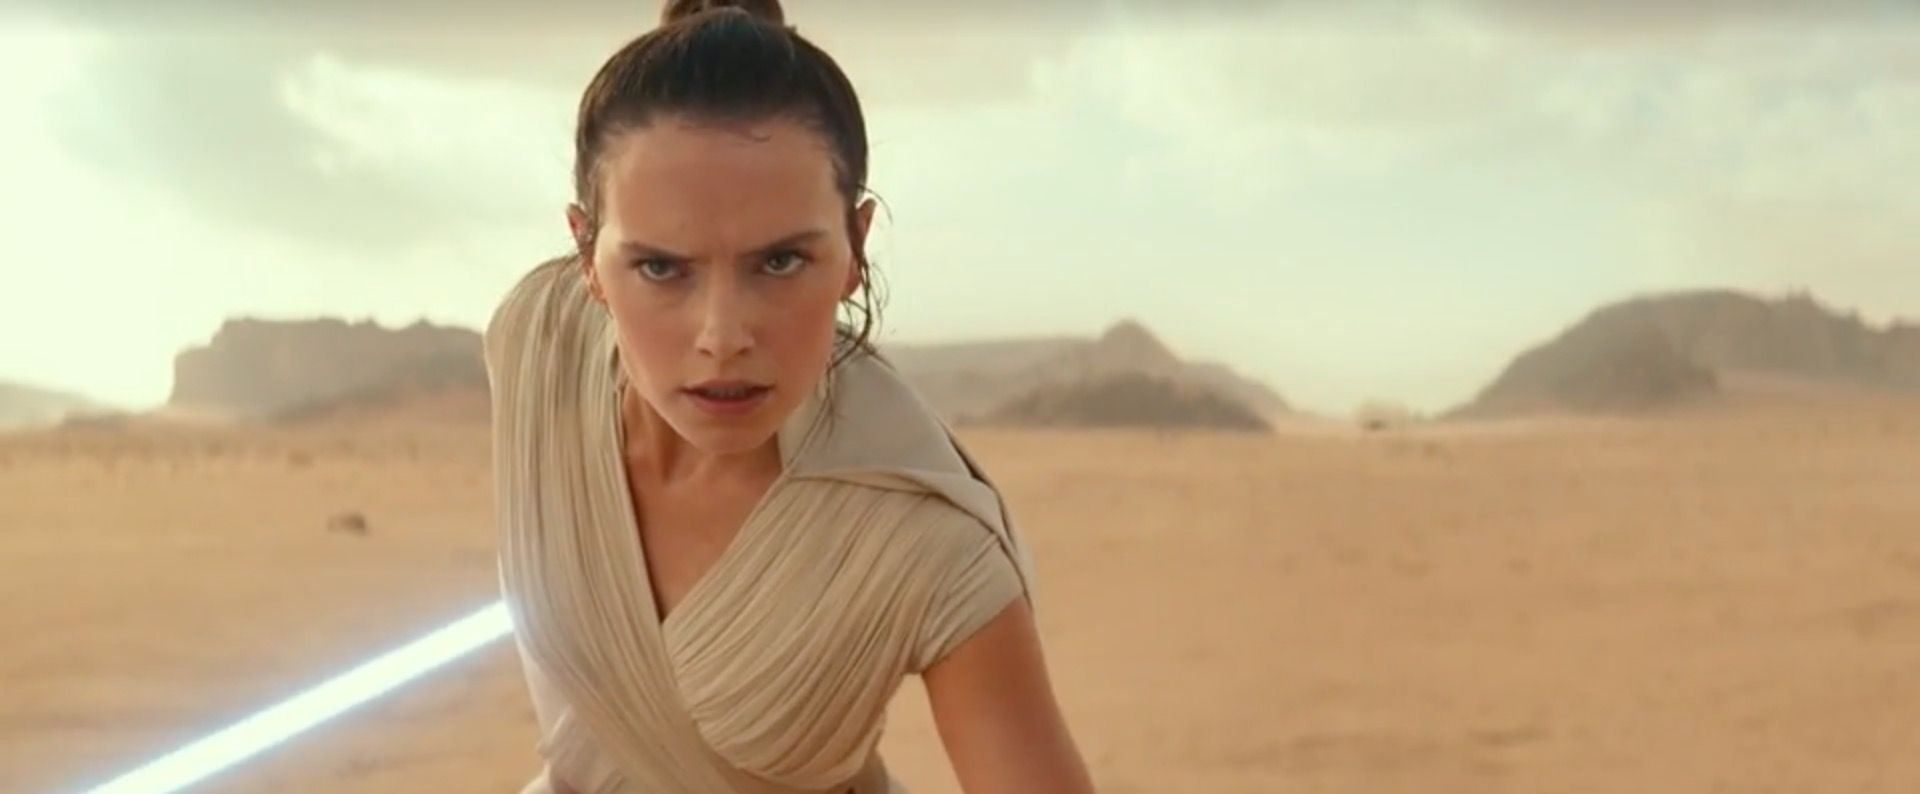 "Star Wars: The Rise of Skywalker's Daisy Ridley says former director Colin Trevorrow's version was ""very different"""